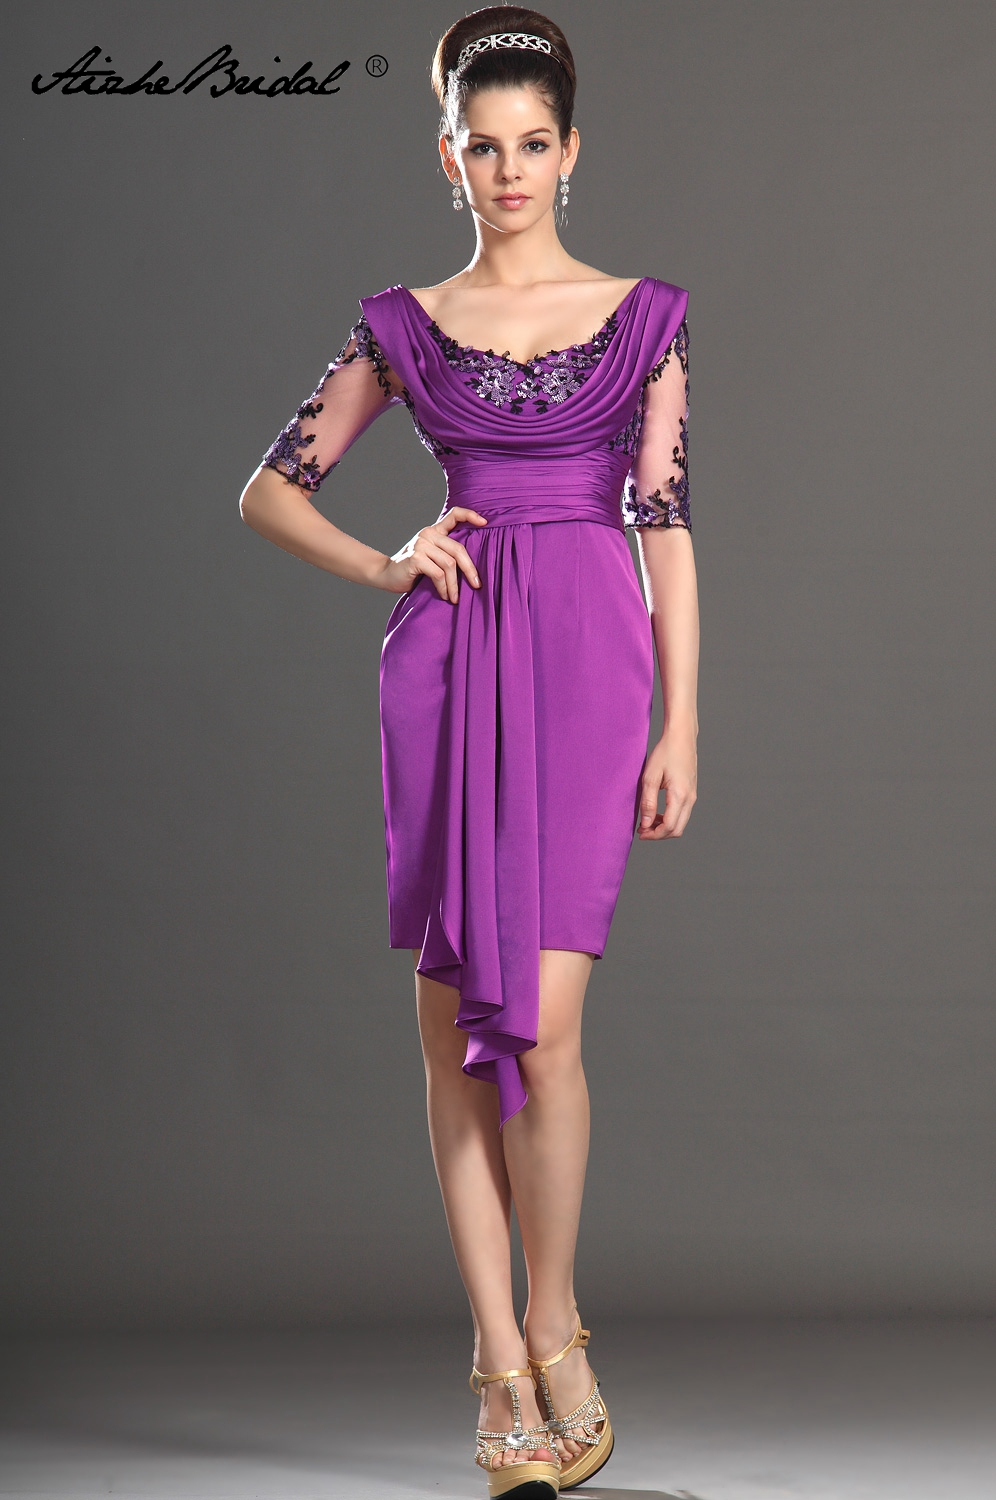 Gorgeous Half Sleeve Knee Length Black Applique Purple Satin Mother Of The Bride Dress Tank Short Formal Women's Dress